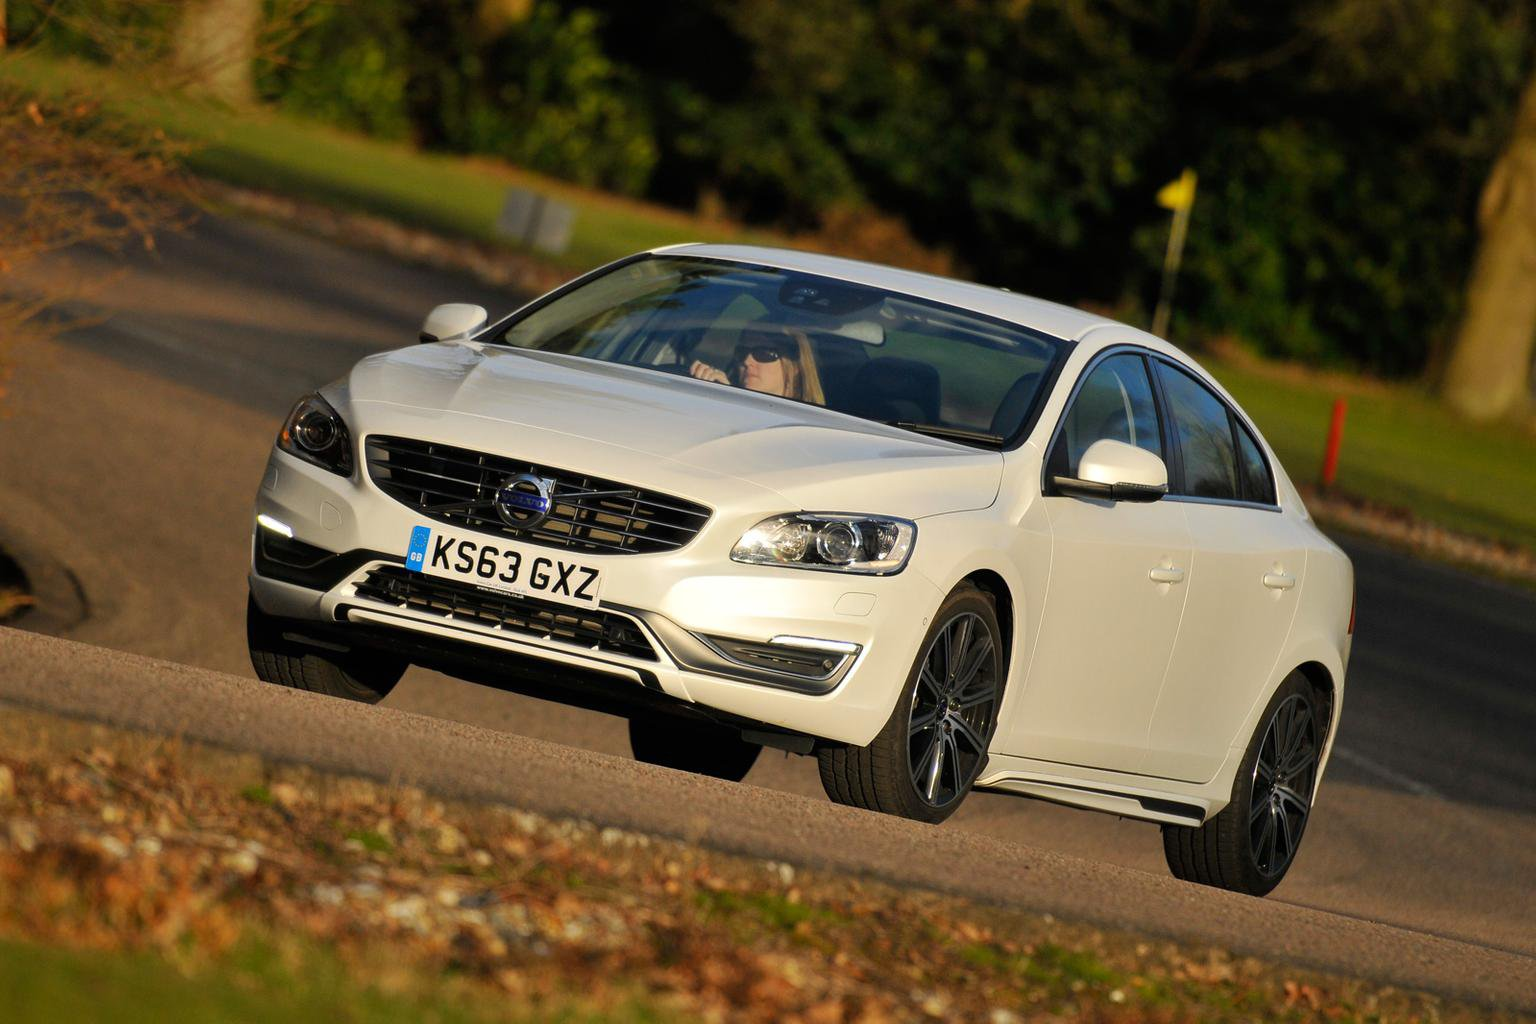 2014 Volvo S60 D4 review